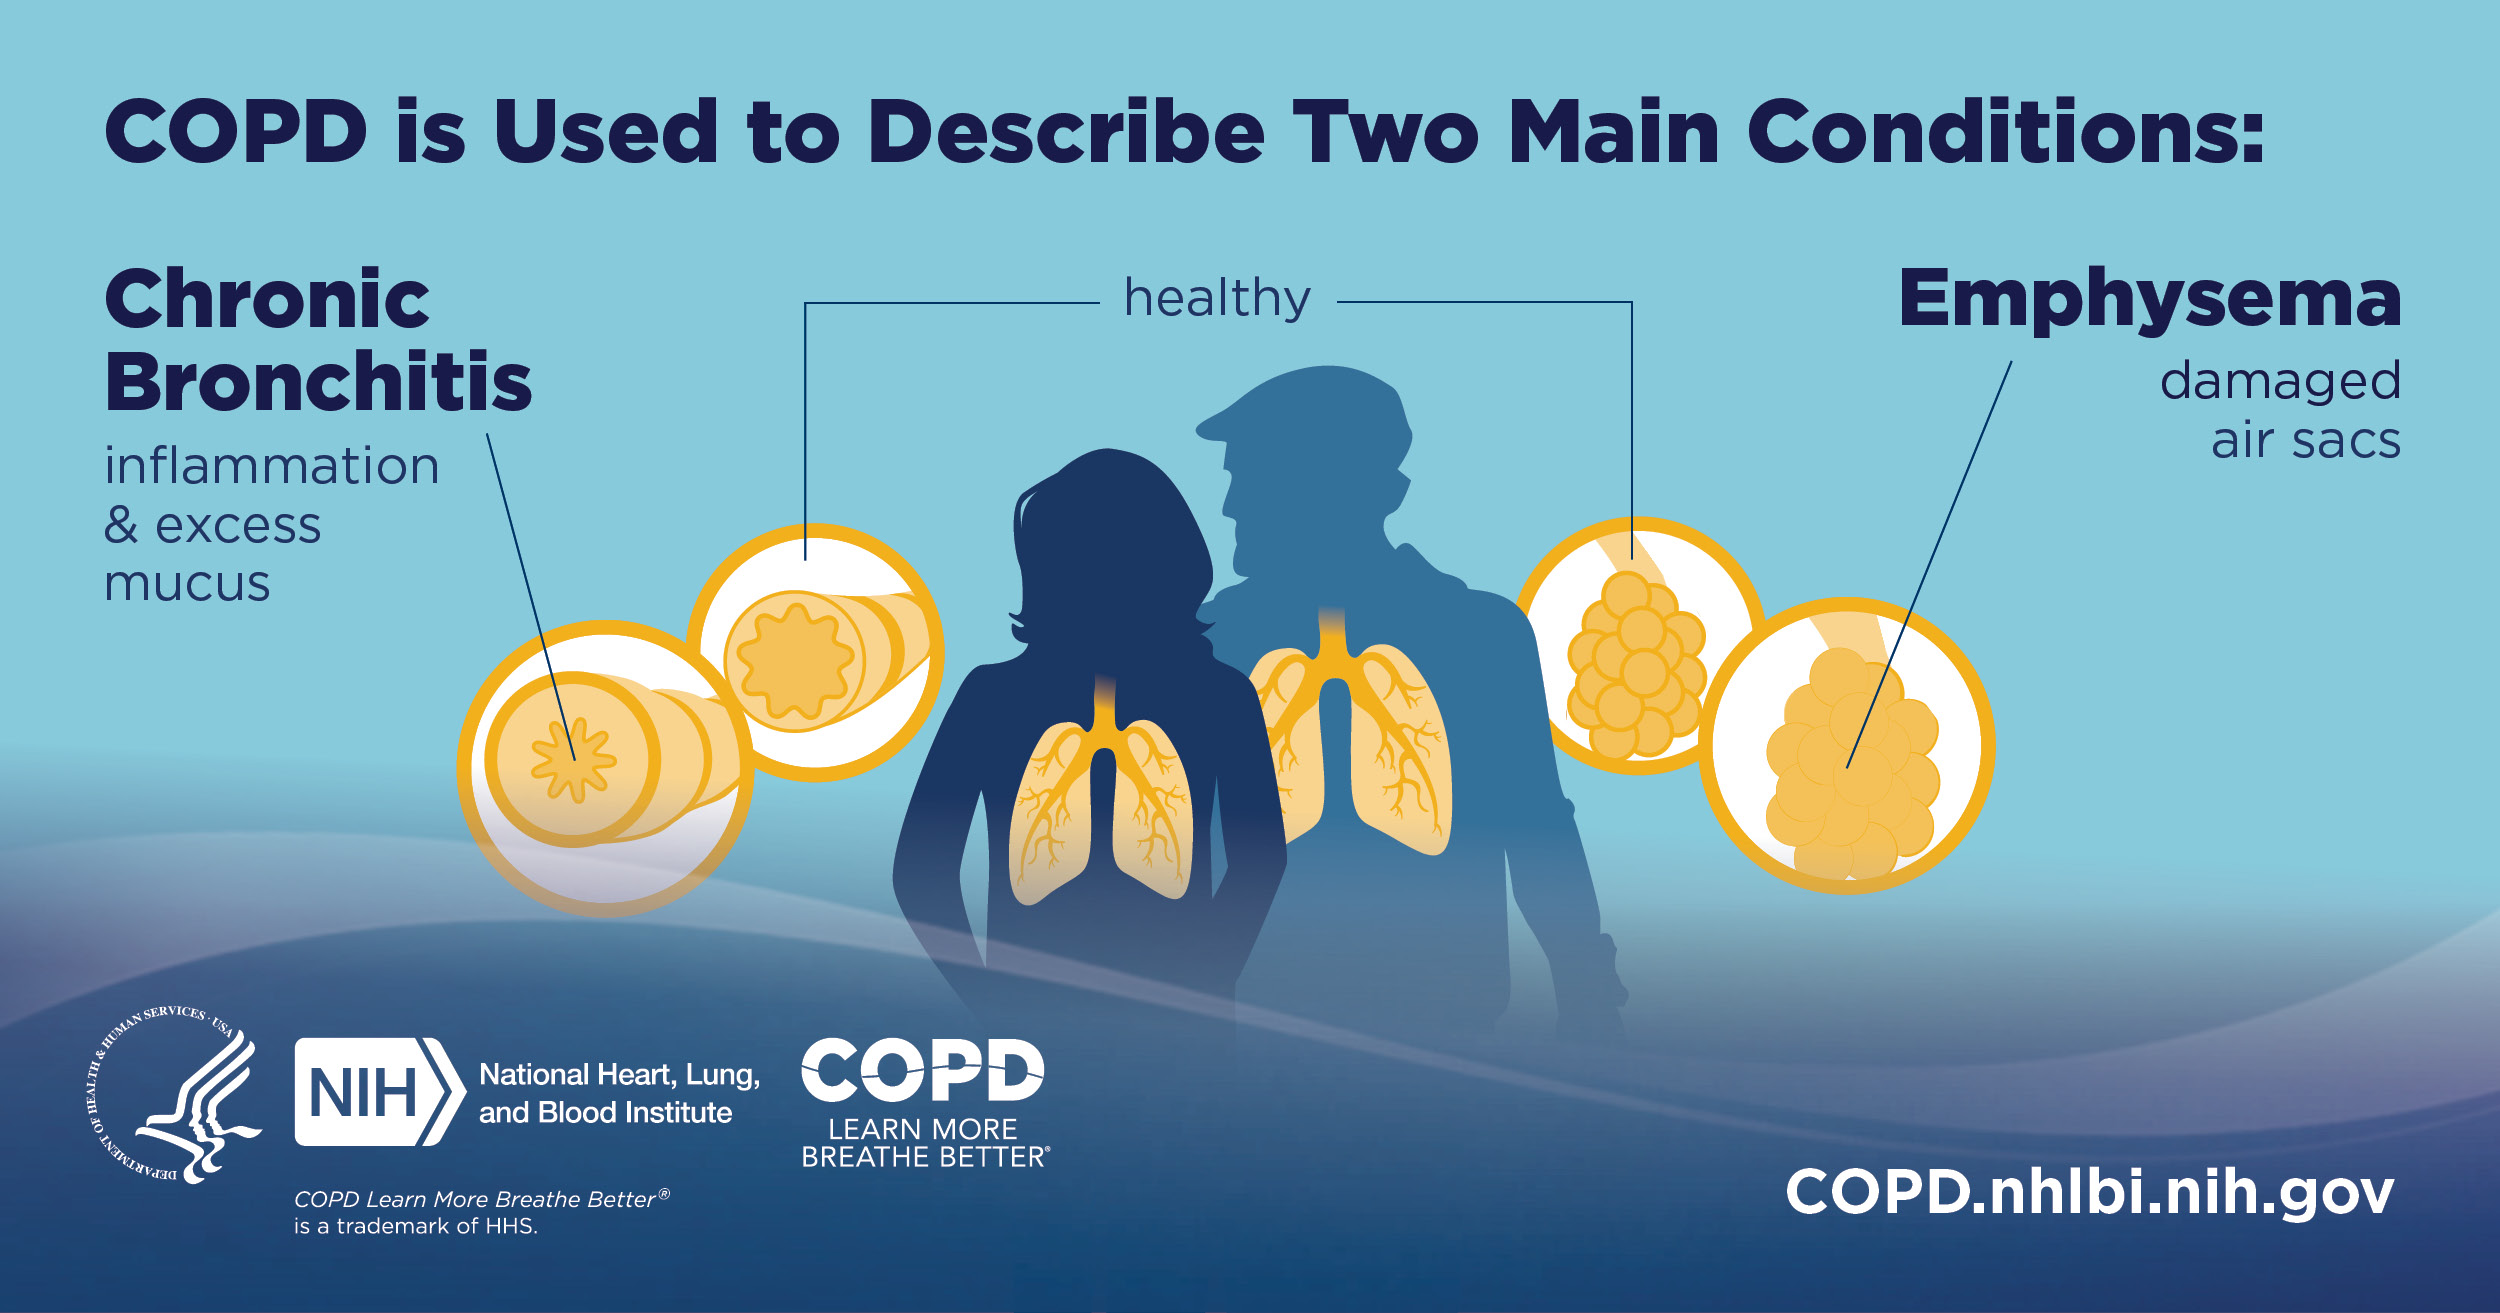 COPD is Used to Describe Two Main Conditions: Chronic Bronchitis (inflammation & excess mucus) Emphysema (damaged air sacs). COPD.nhlbi.nih.gov.